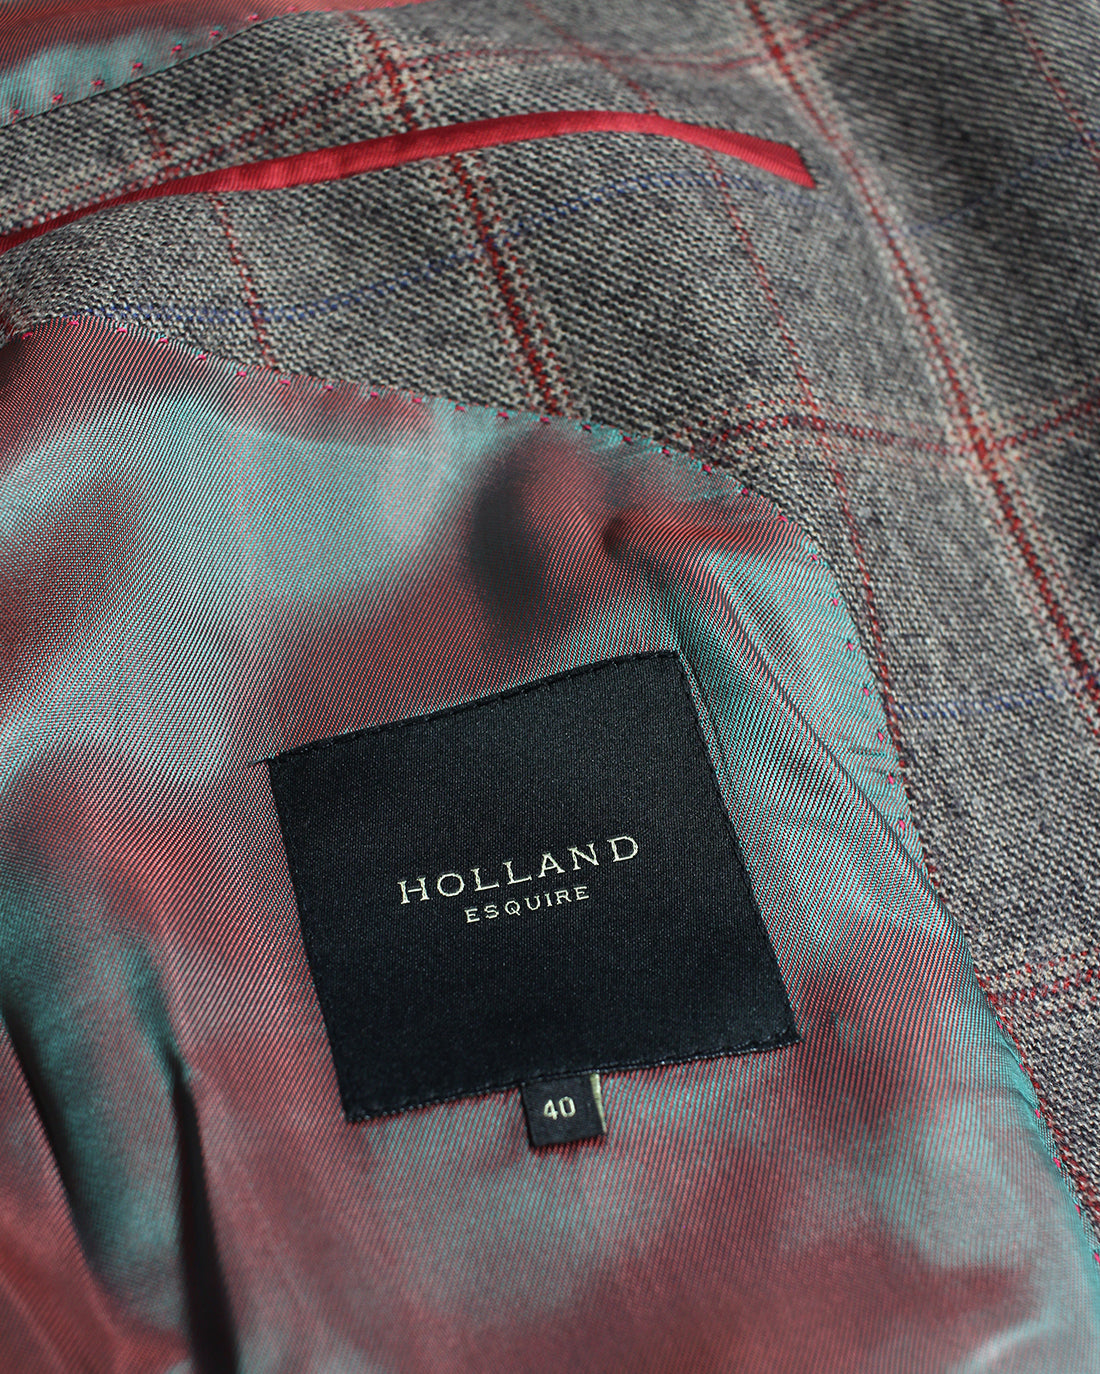 Brown and Red Windowpane Reginald Jacket - Holland Esquire